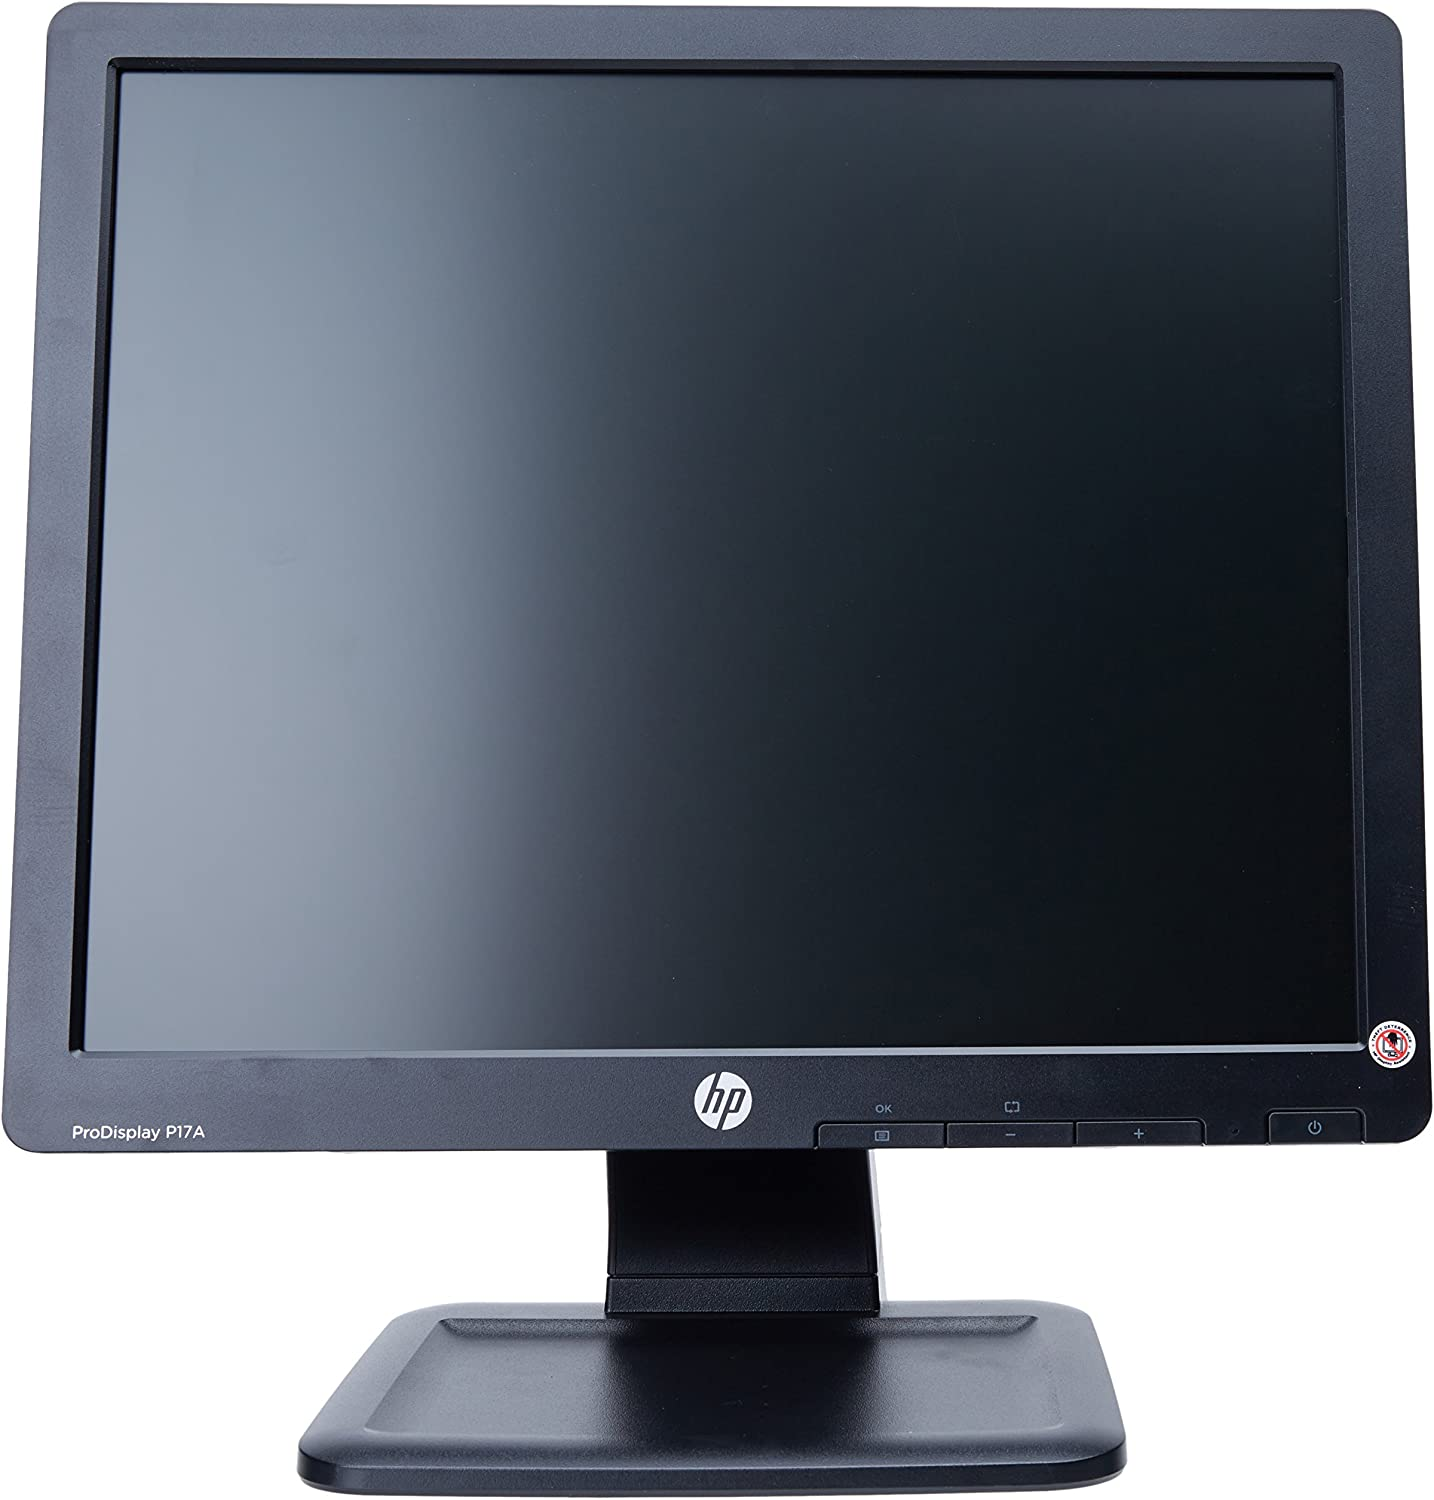 "HP Business F4M97A8#ABA 17"" ProDisplay P17A LED MNT"